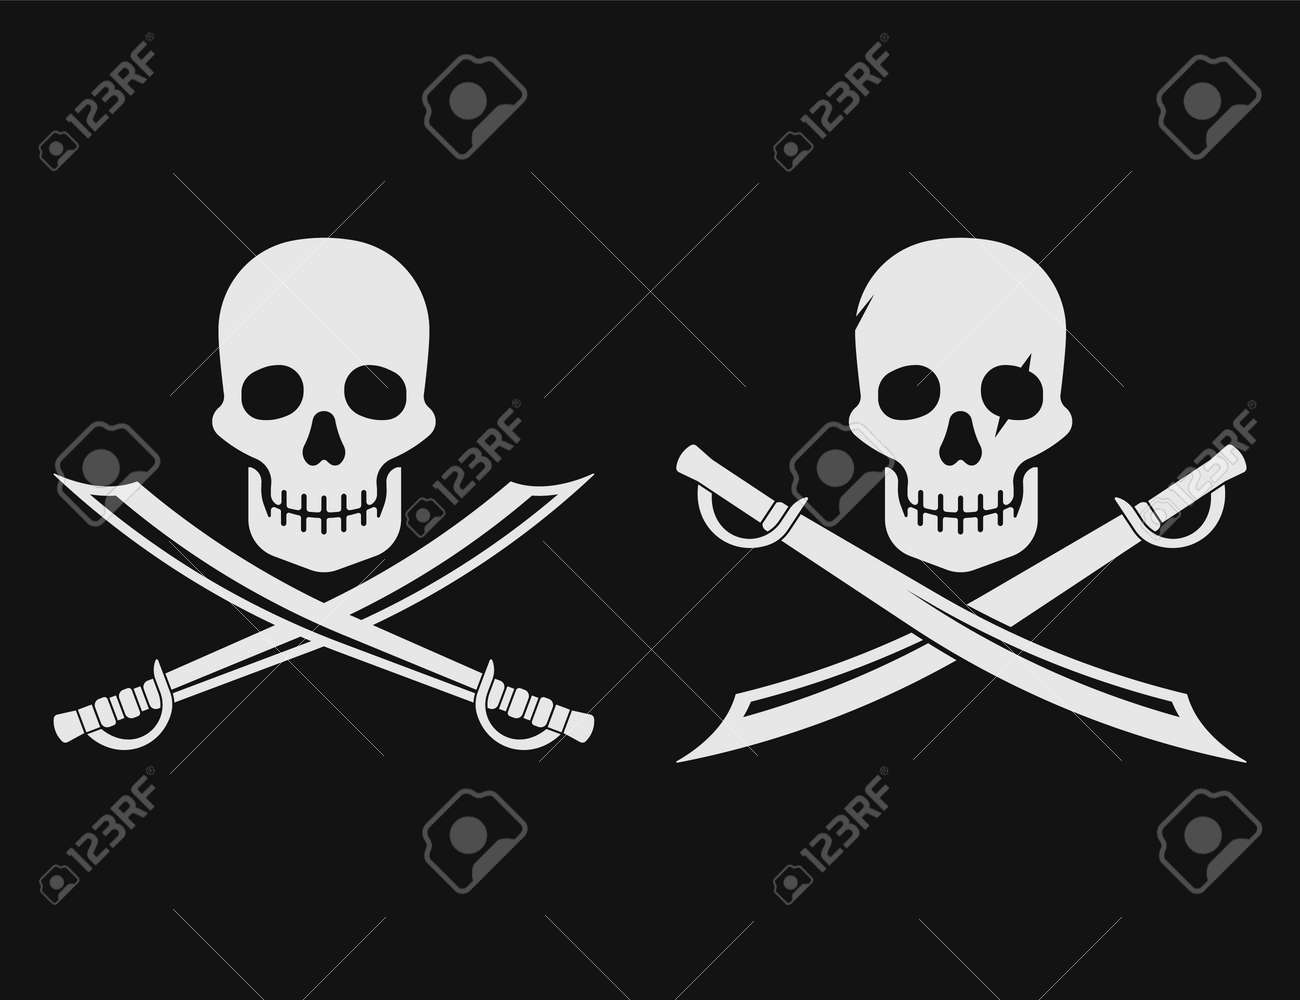 Pirate skull and blades icon. Vector illustration. - 166668930